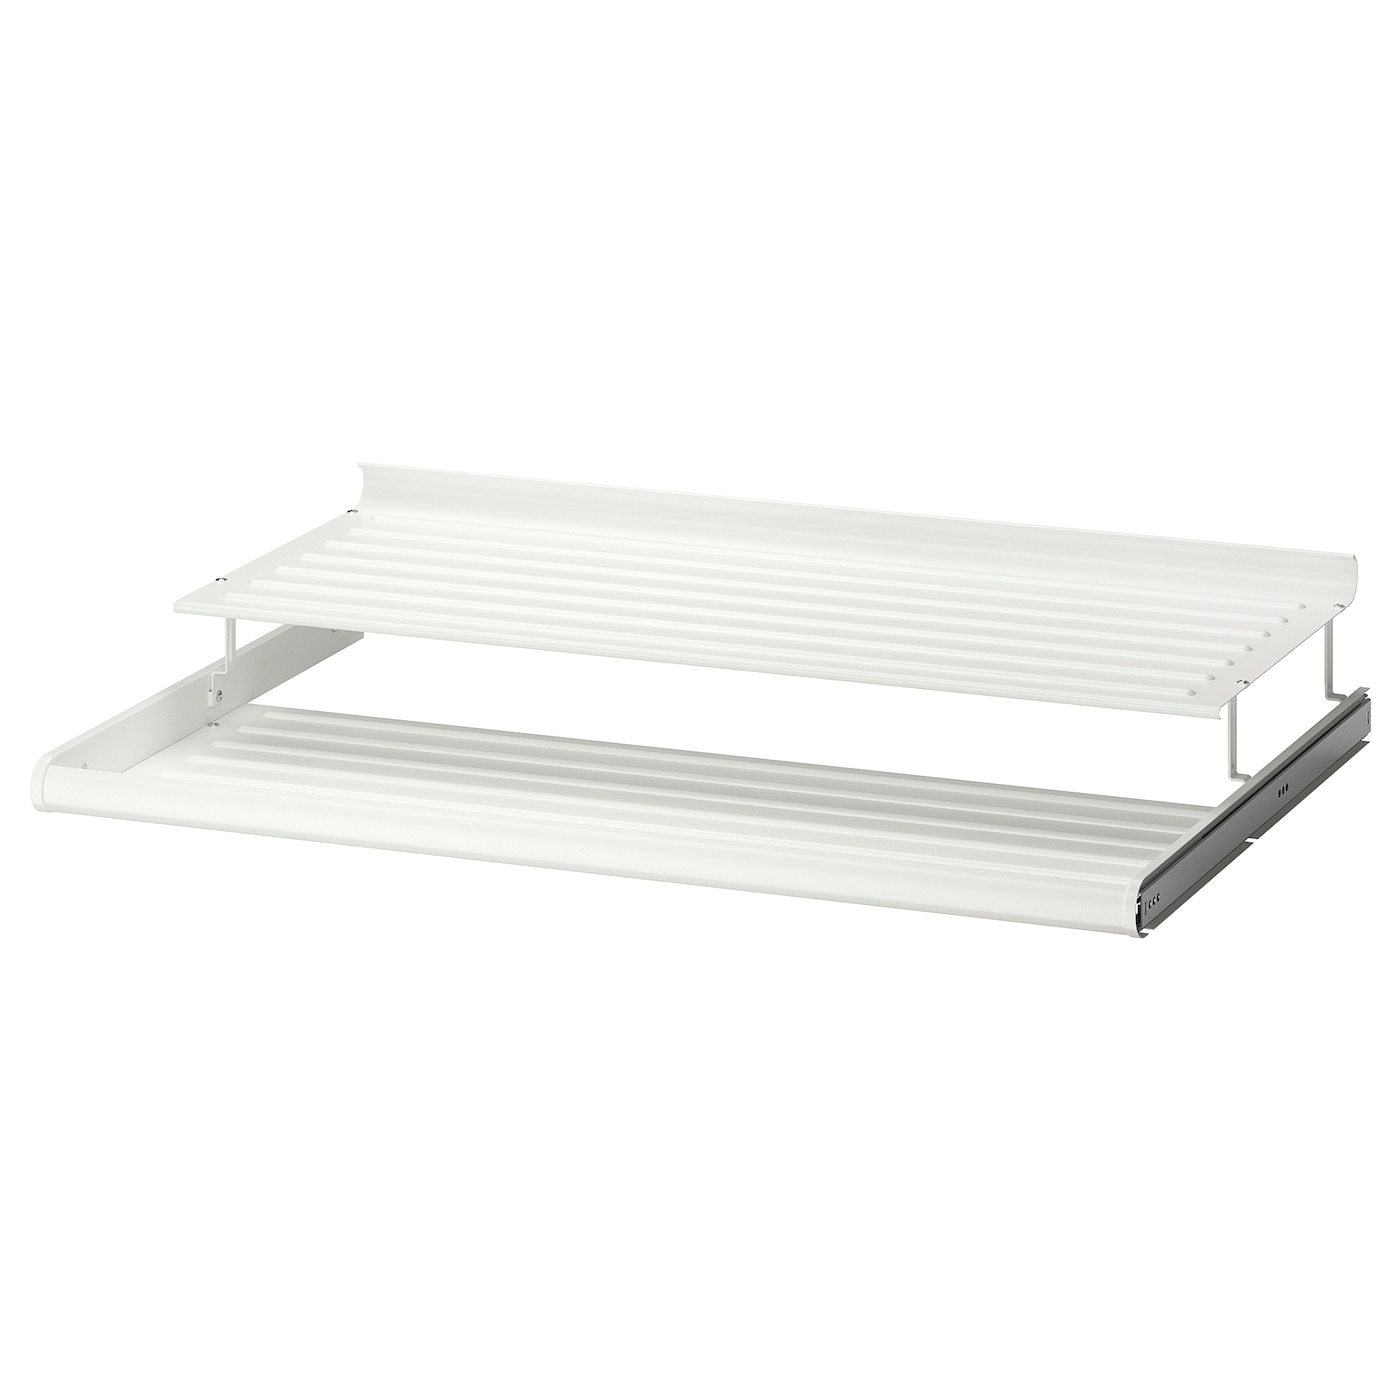 komplement pull out shoe shelf white 100 x 58 cm ikea. Black Bedroom Furniture Sets. Home Design Ideas